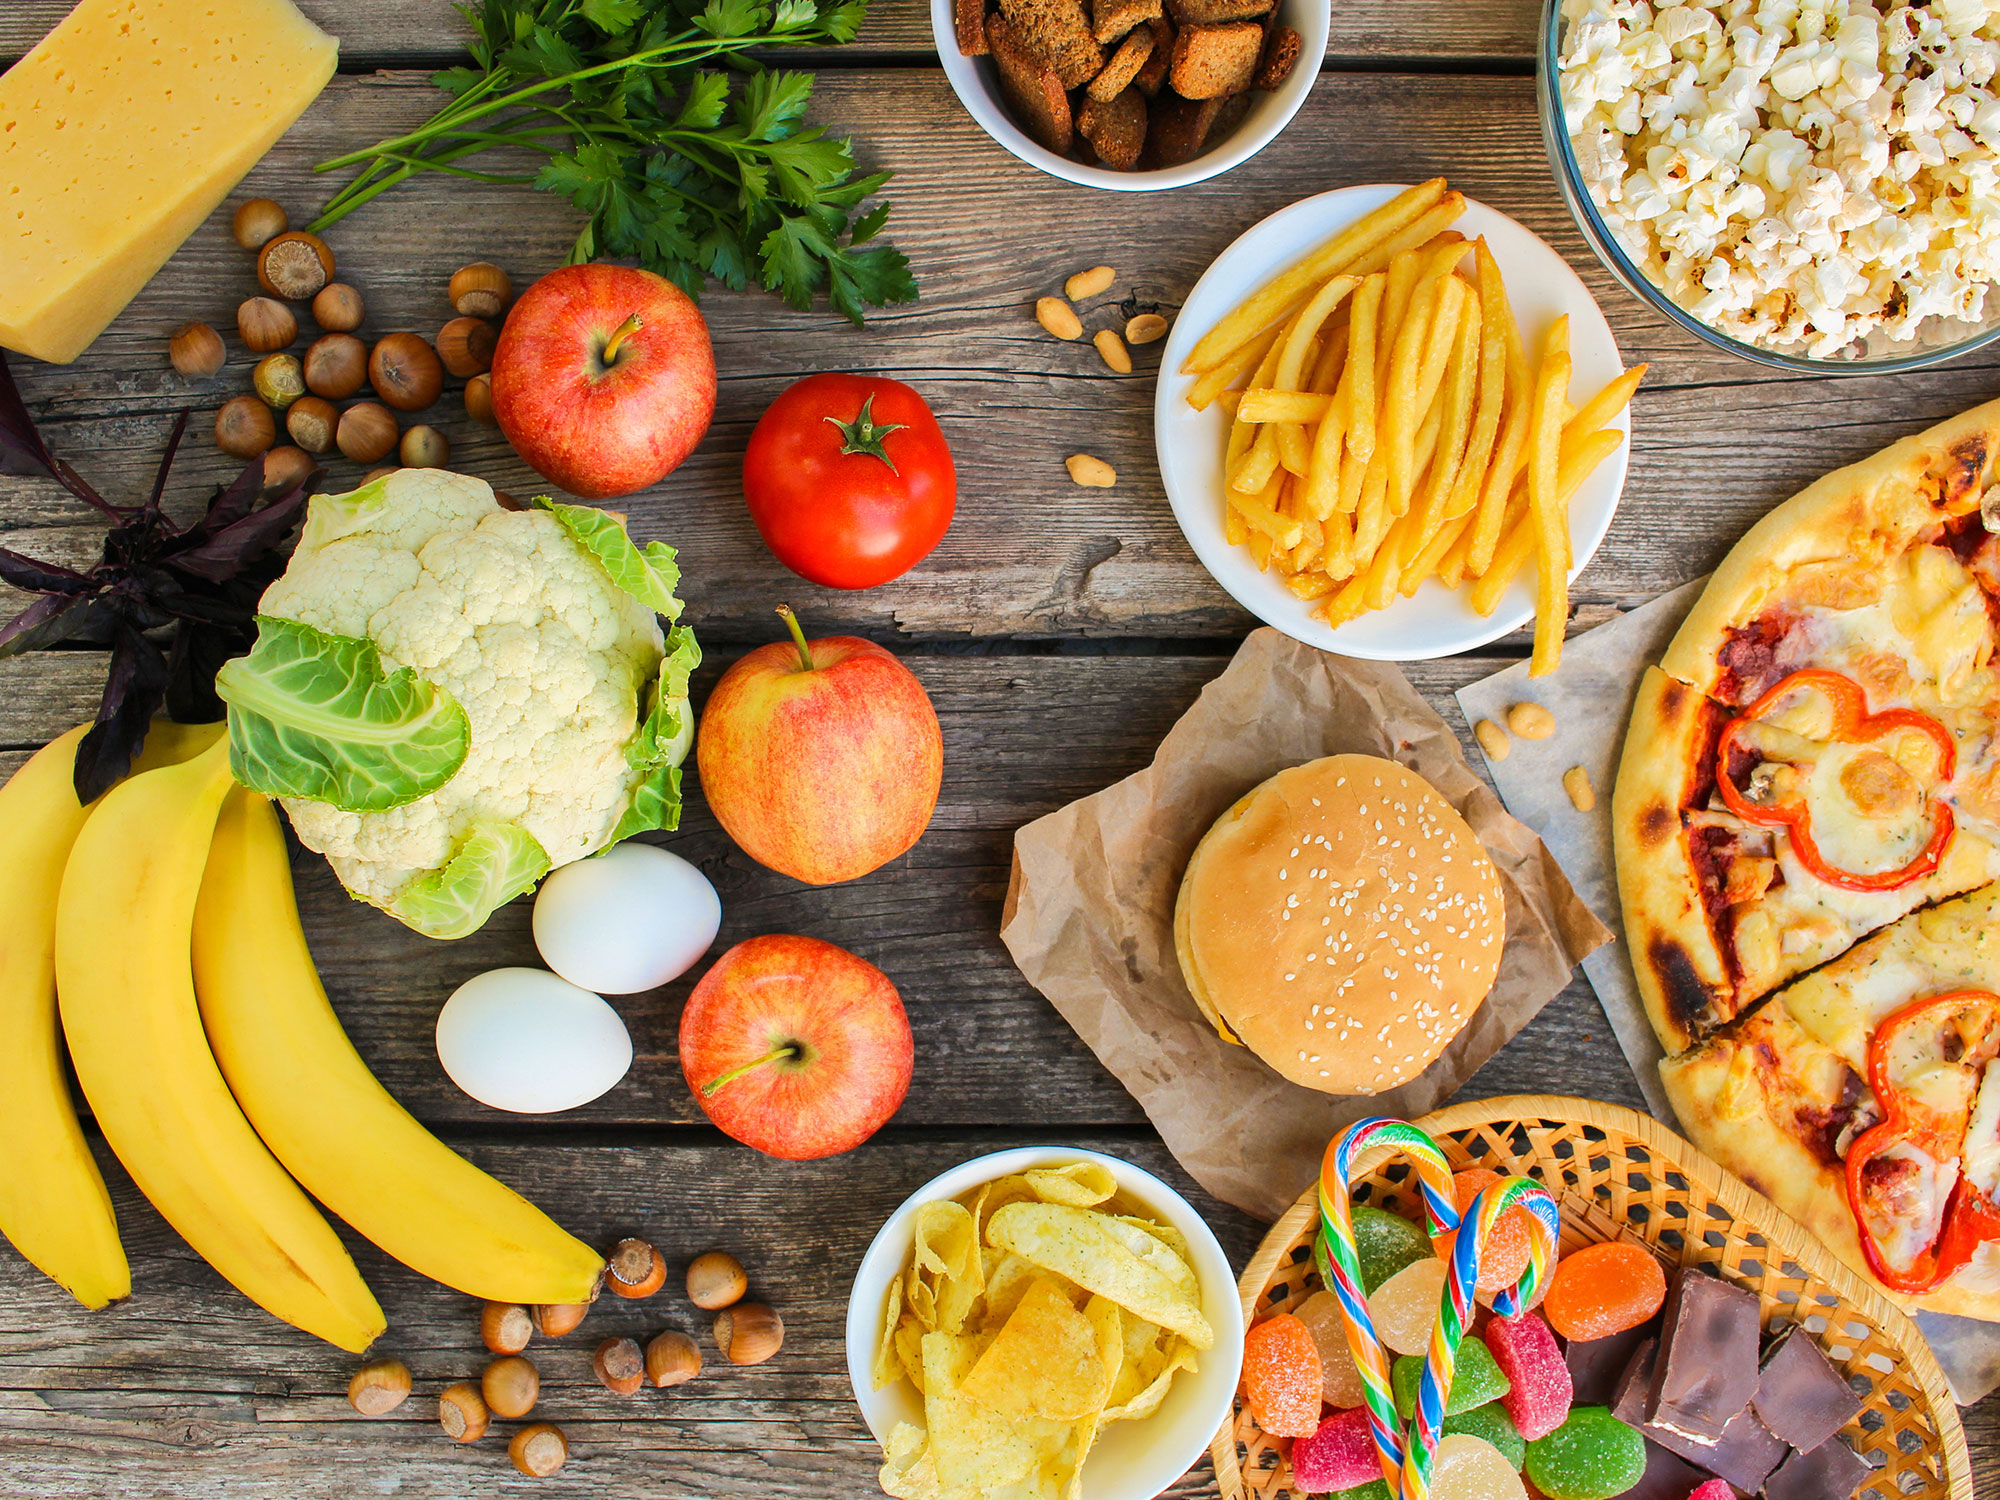 What Does 'Processed Food' Mean Exactly?